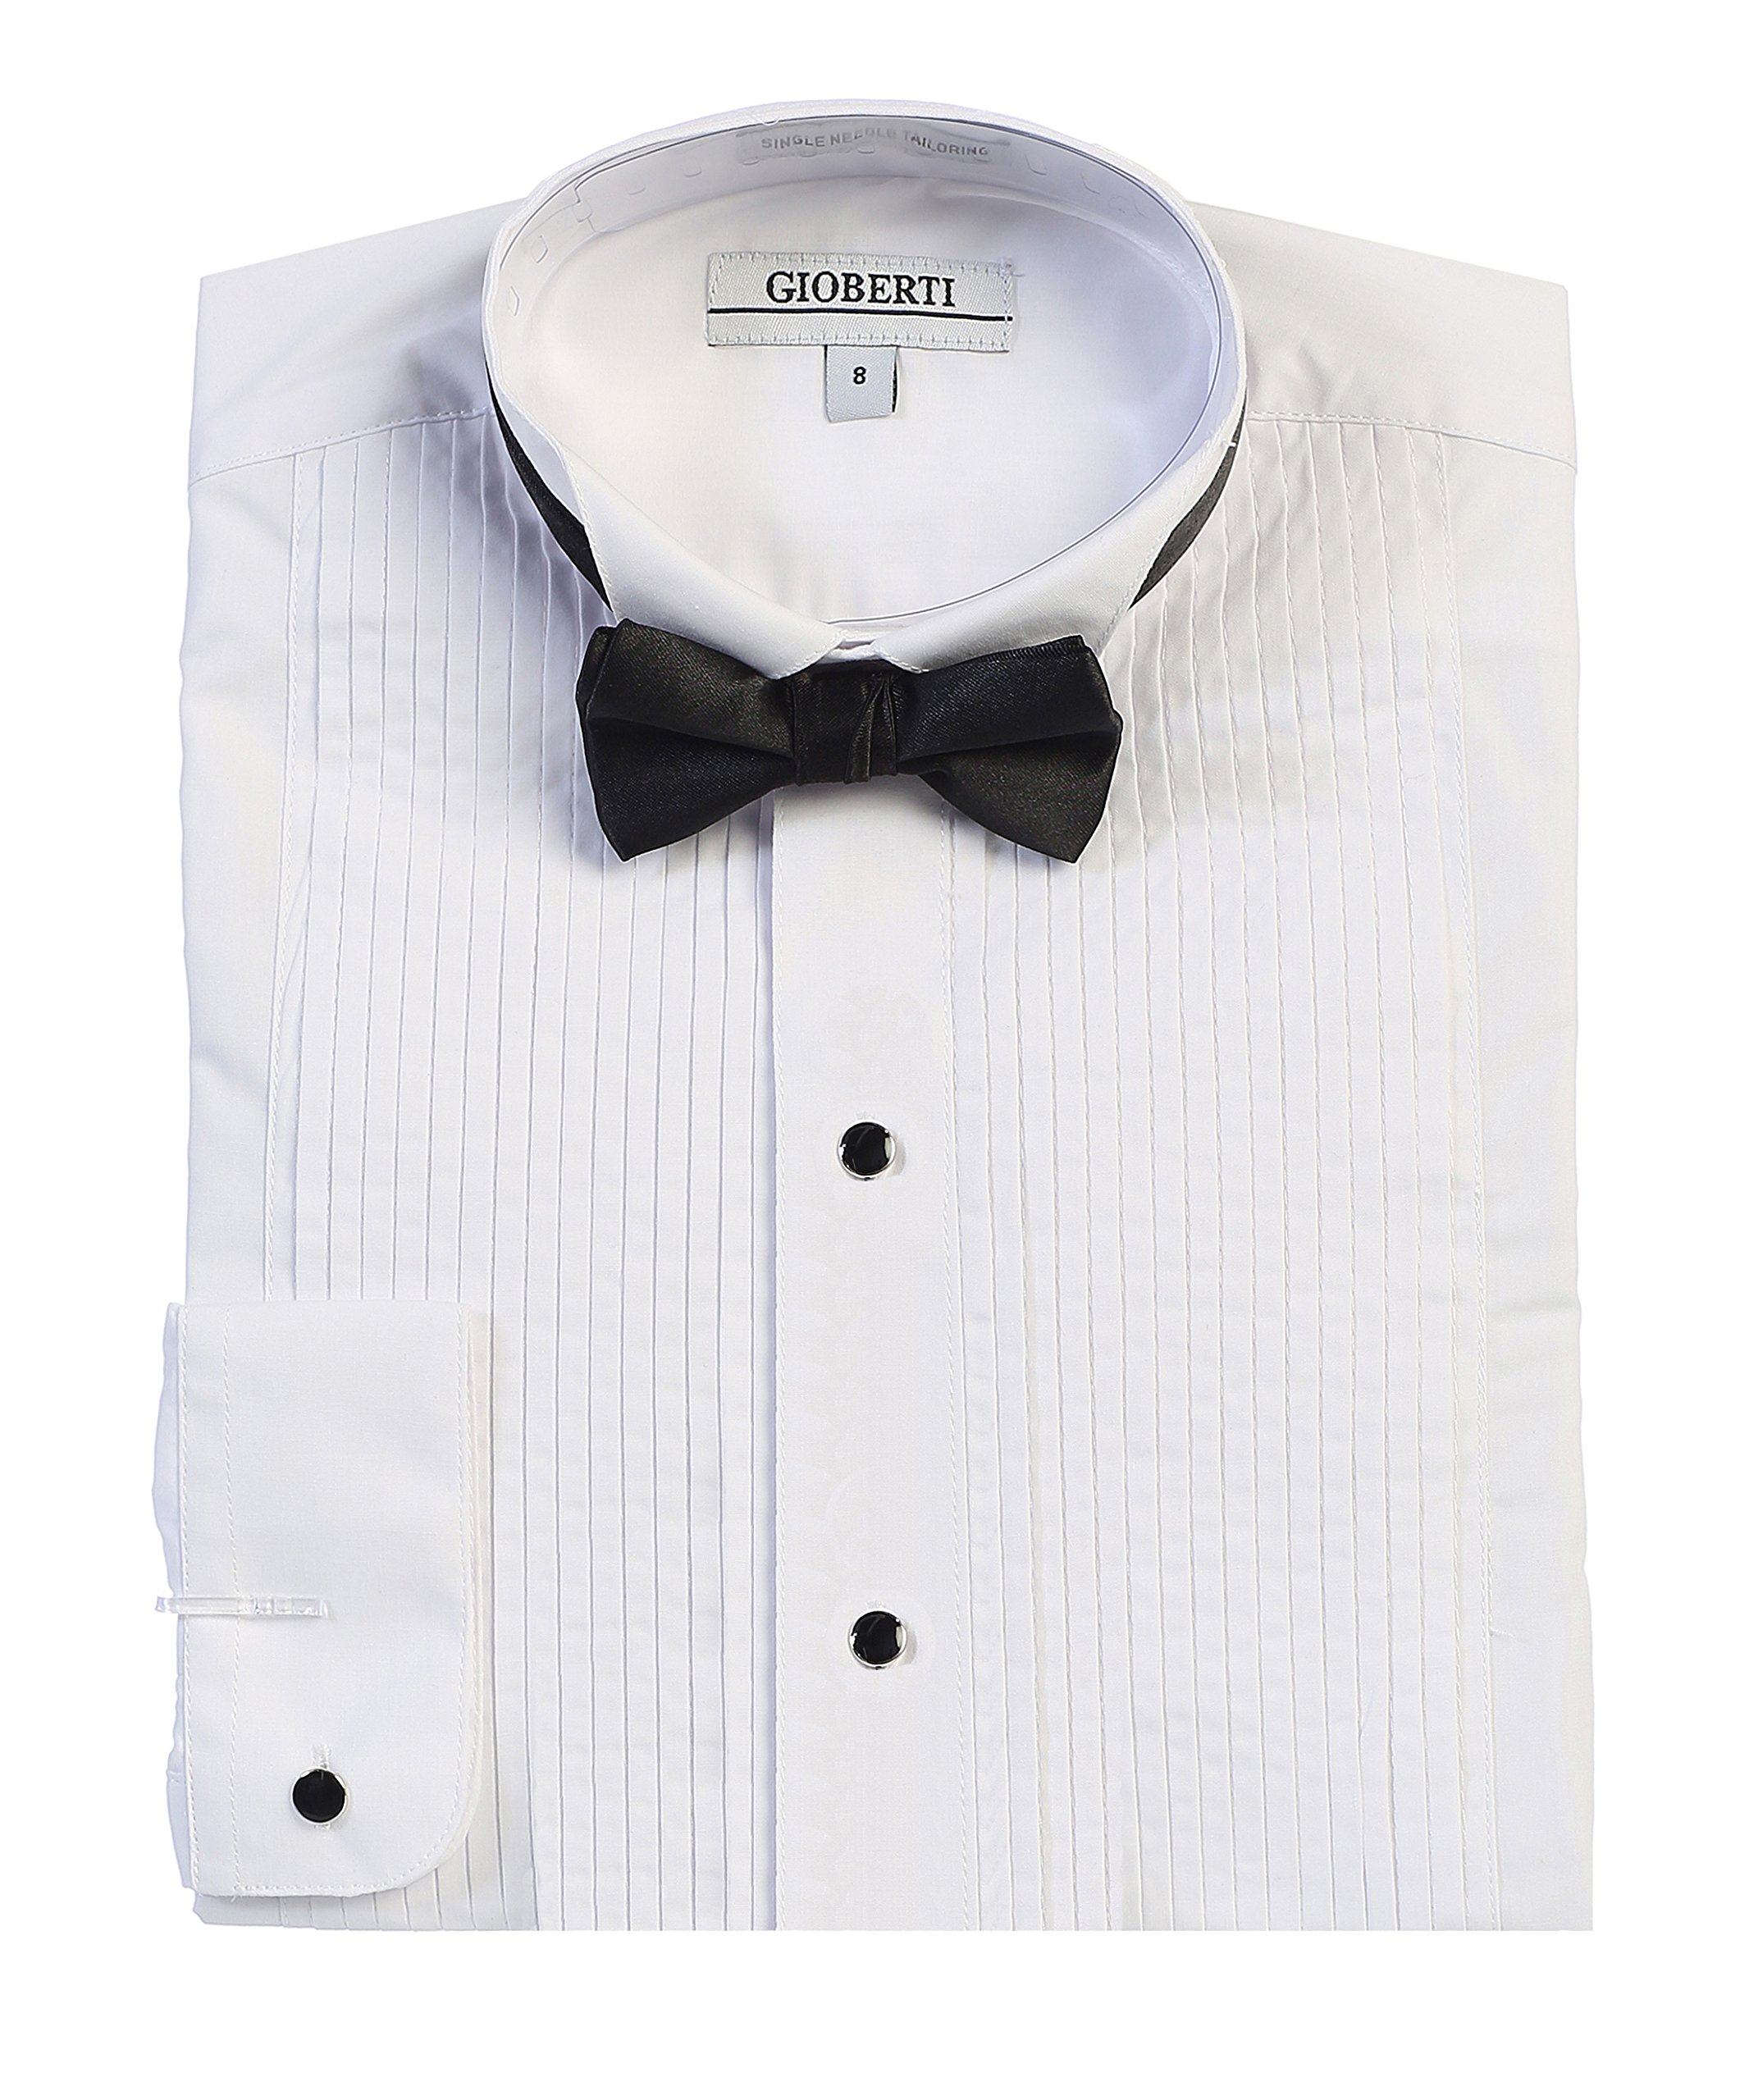 Gioberti Boy's Wing Tip Collar Tuxedo Dress Shirt with Bow Tie, White, Size 16